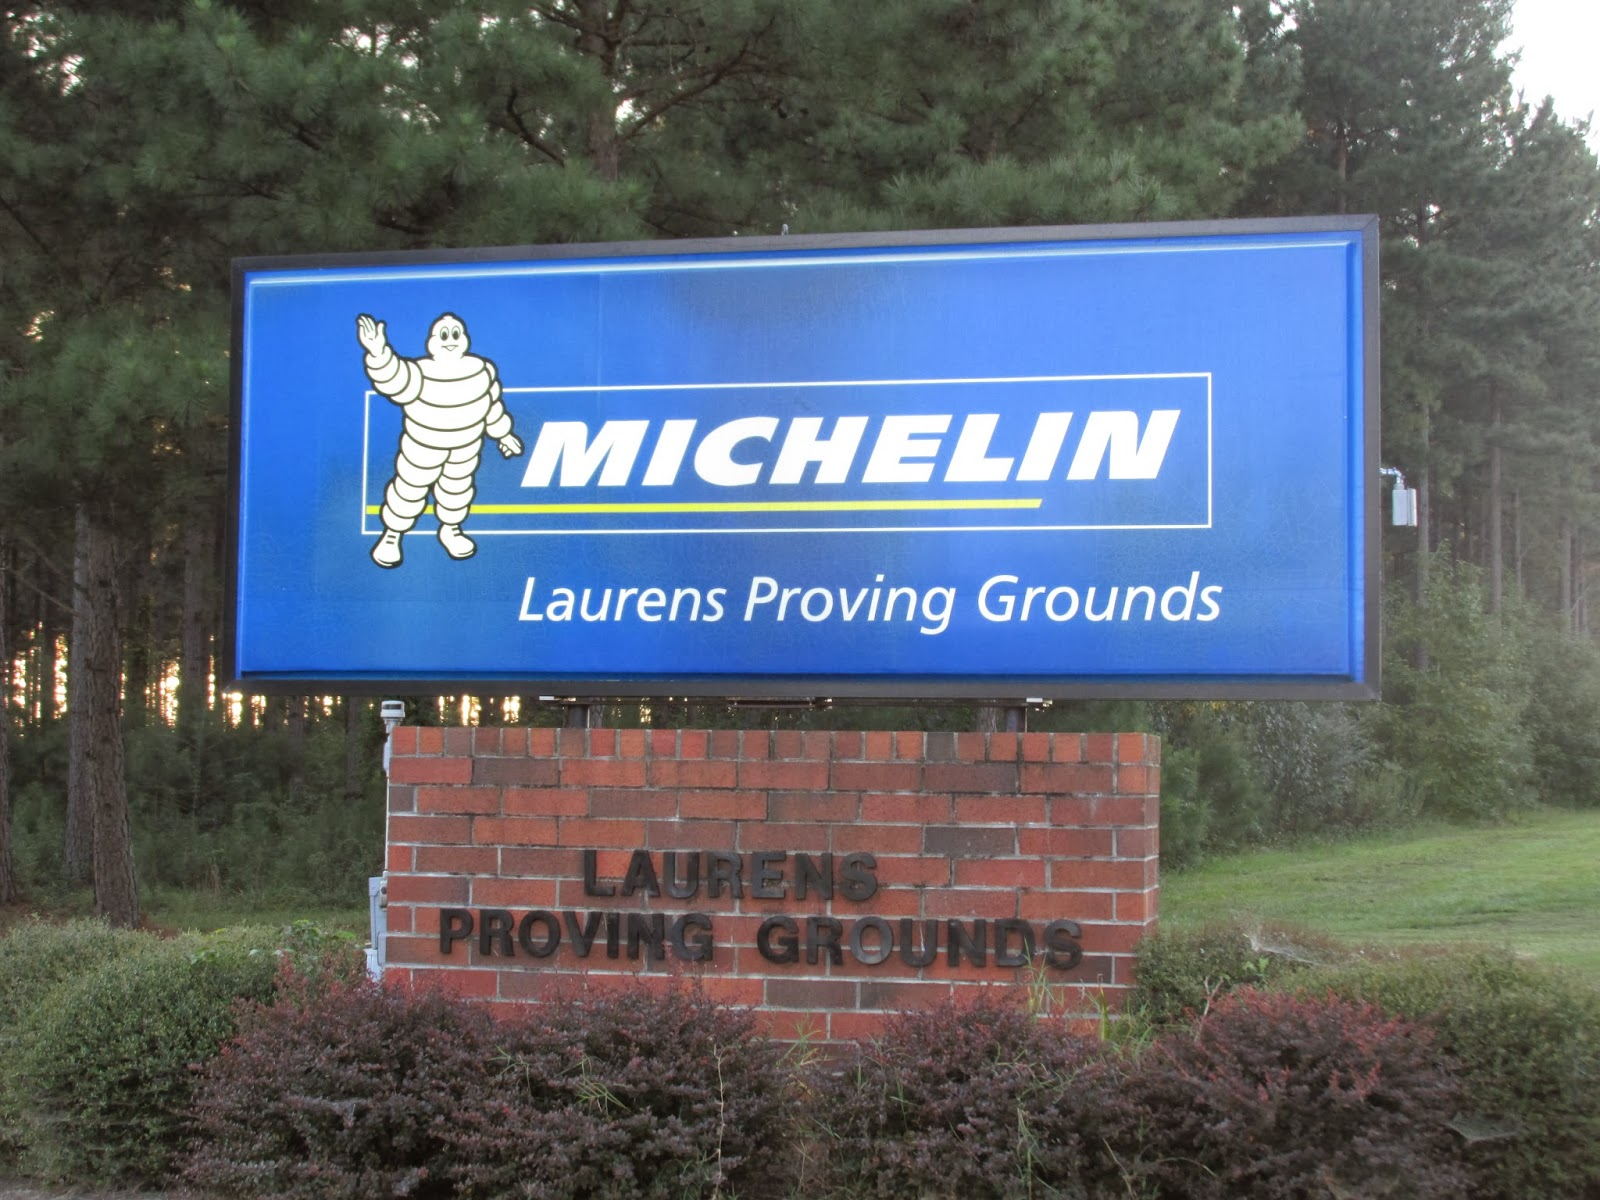 Michelin Proving Grounds laurens